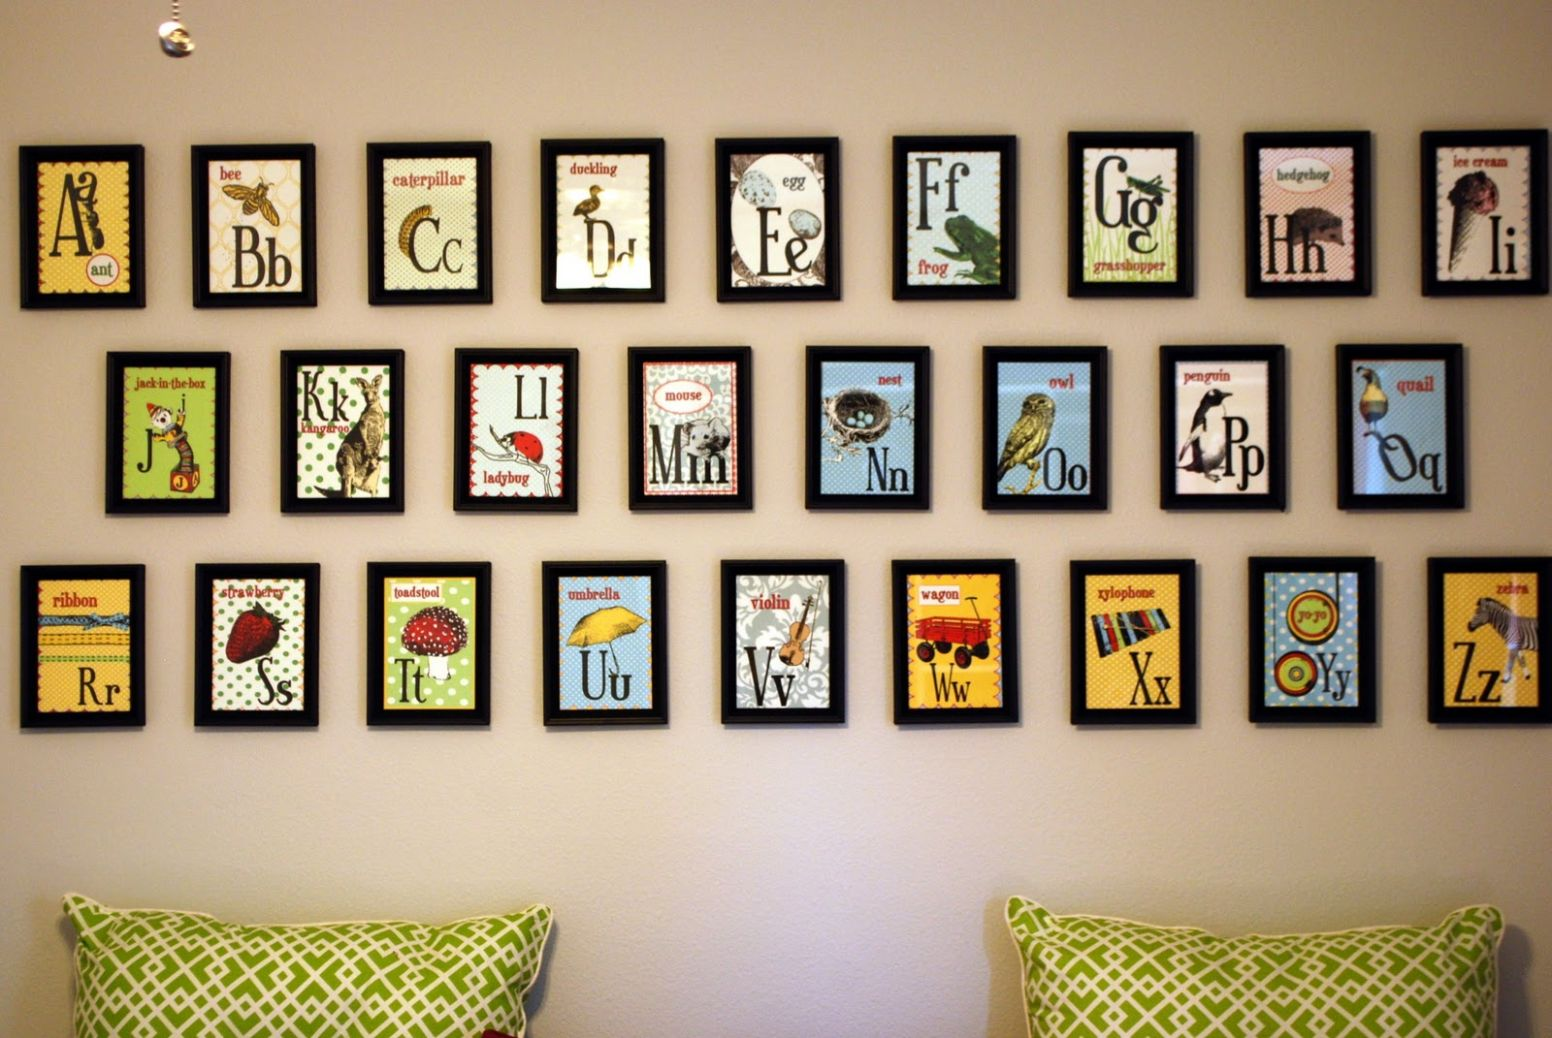 11 Quirky Home Decoration Ideas To Make Your Room Stand Out - quirky wall decor ideas